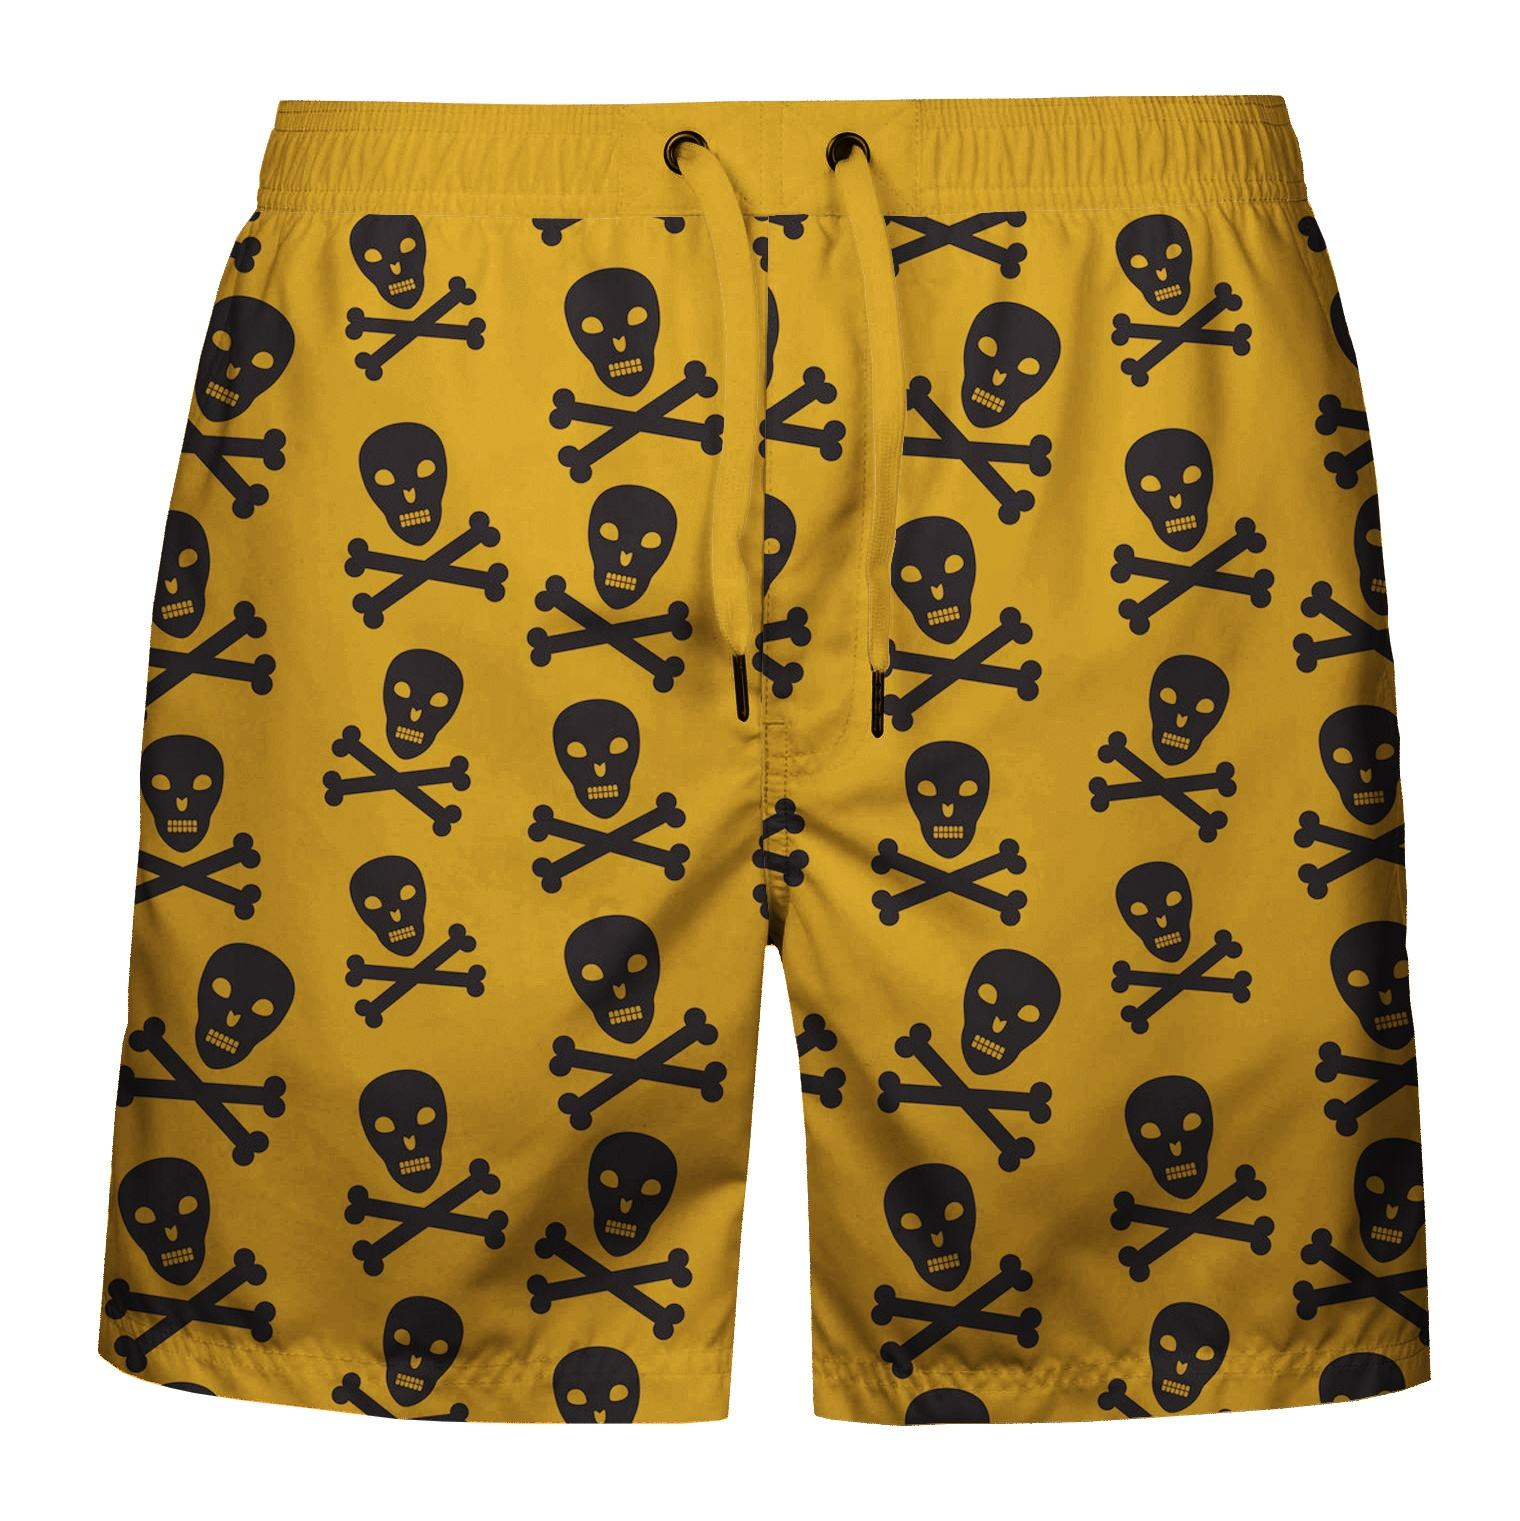 Wholesale OEM Adult Boardshorts Swimming Mens Swim Trunks Swimshorts